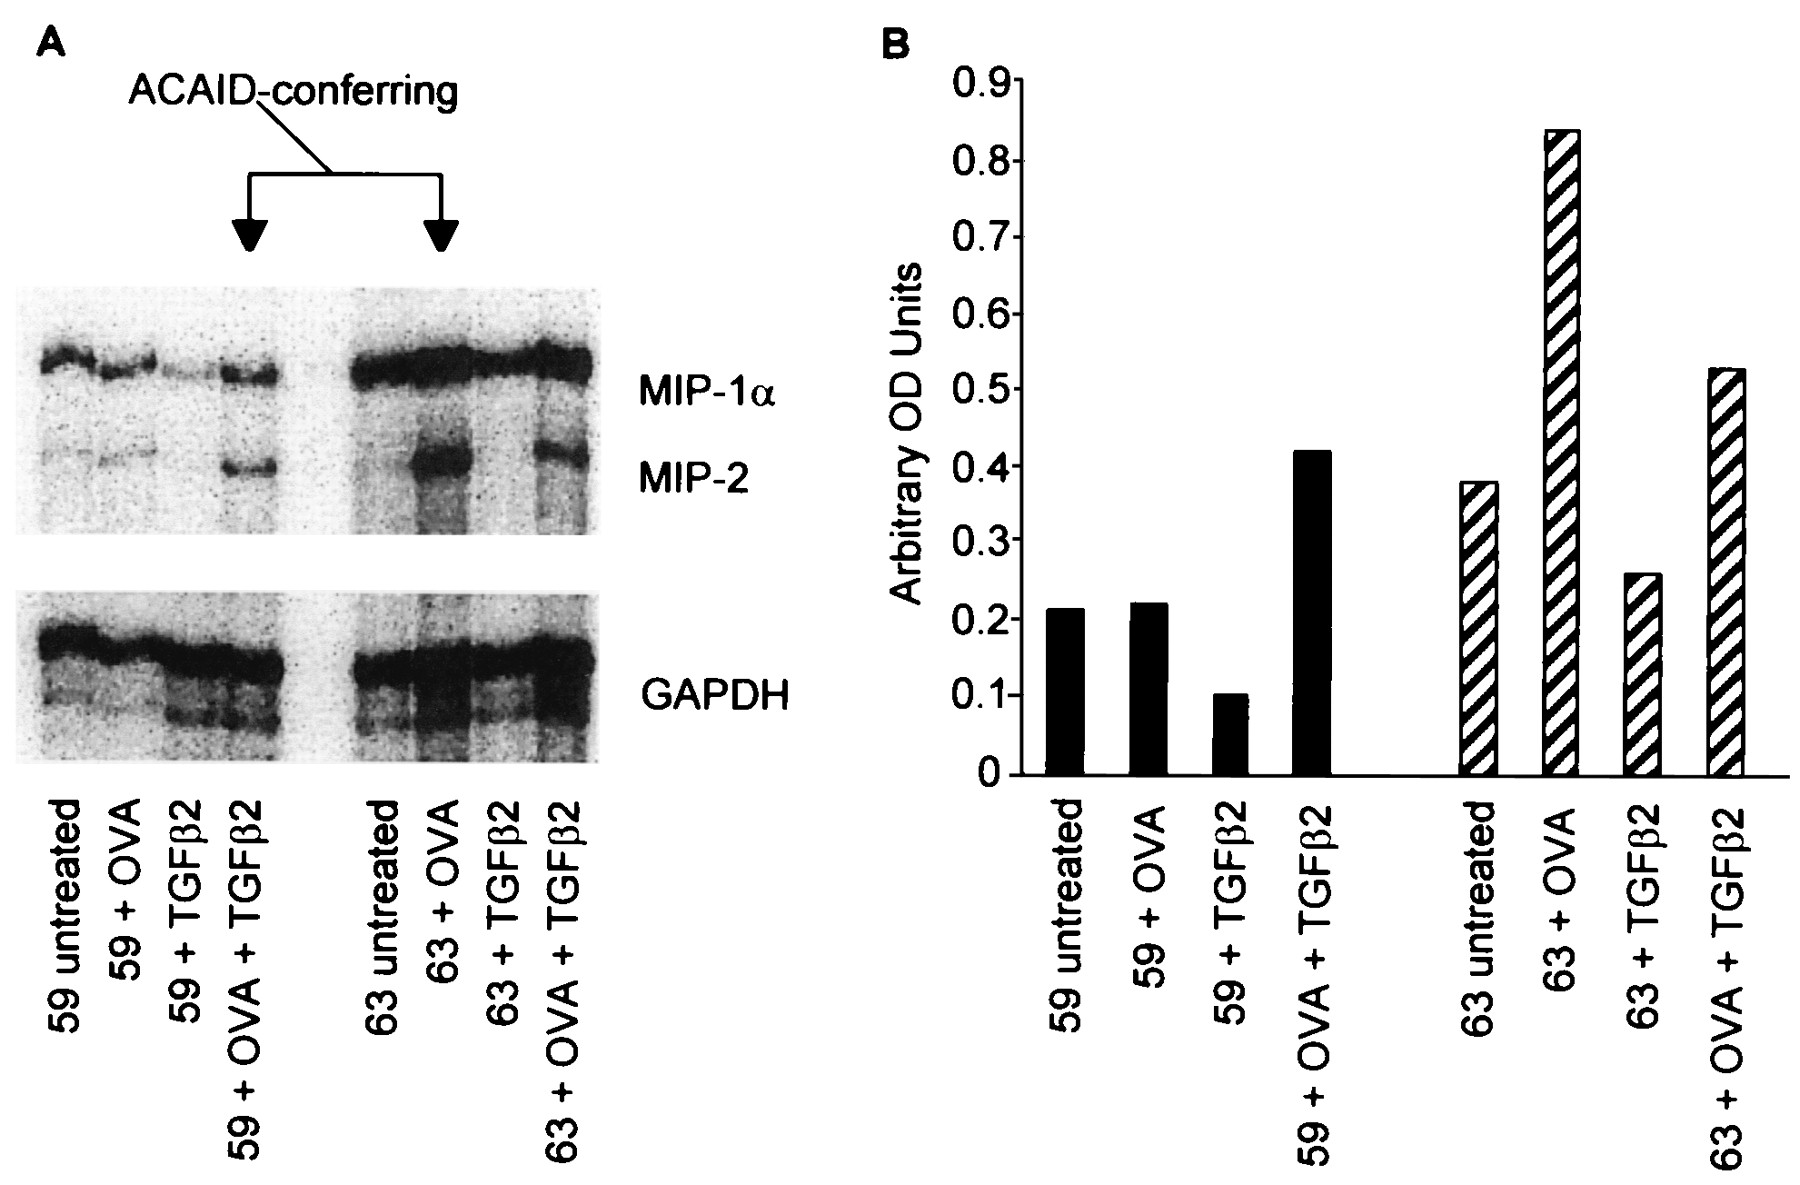 mip 2 recruits nkt cells to the spleen during tolerance induction